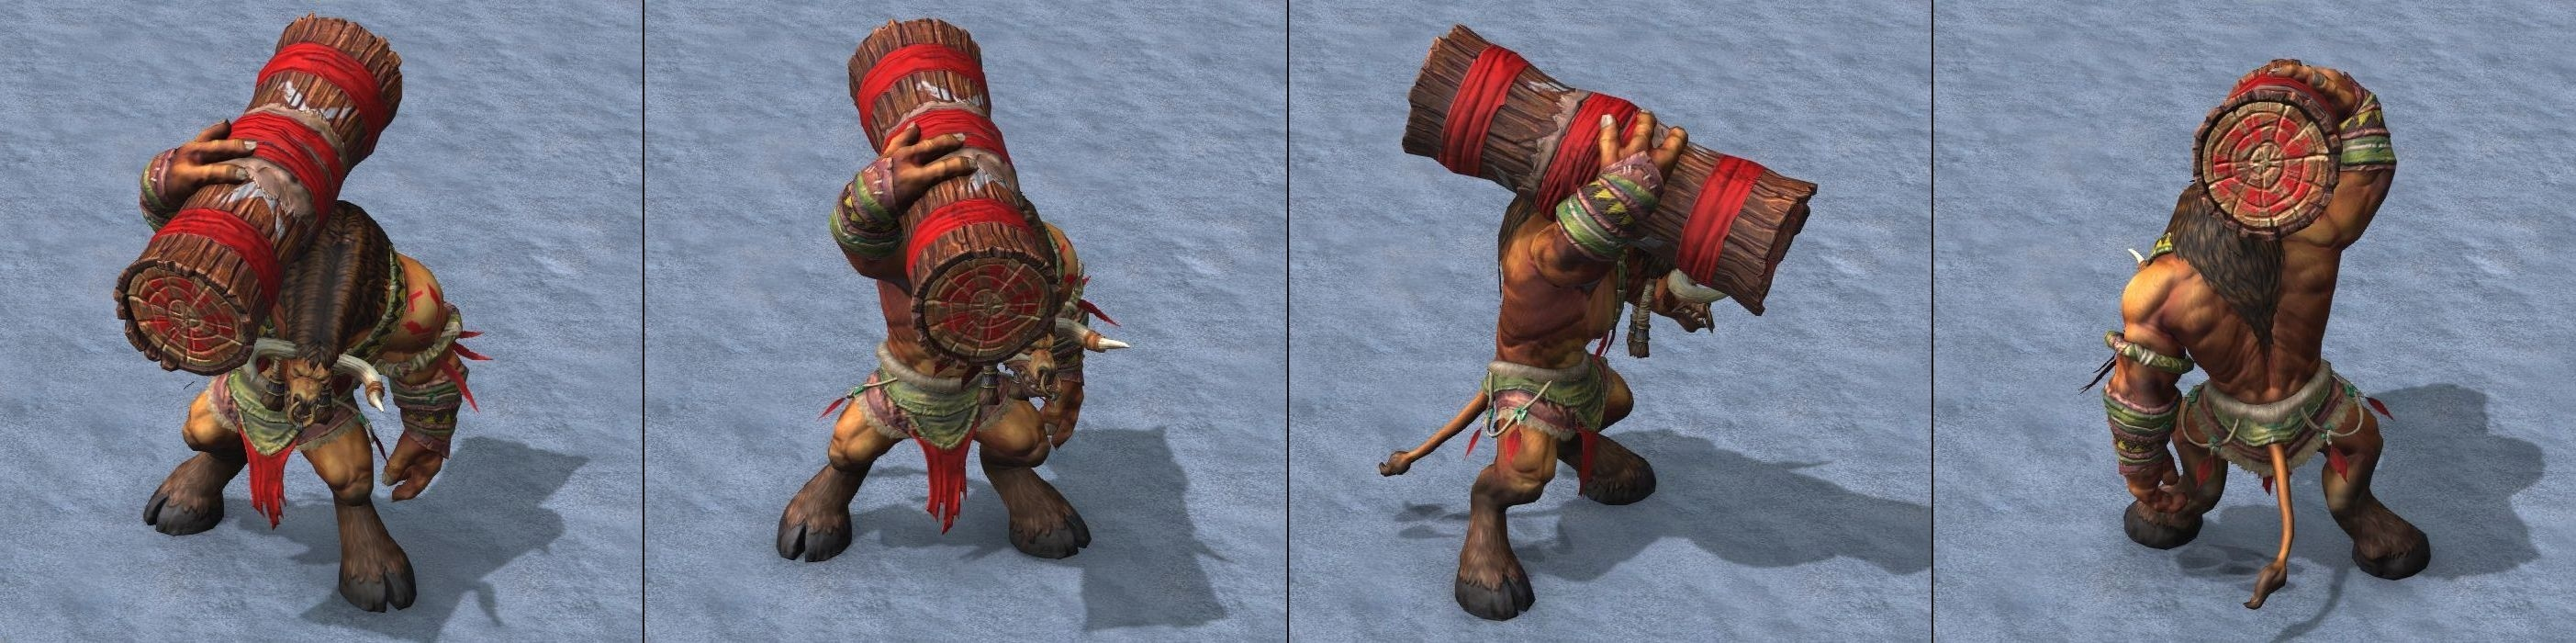 Warcraft 3 Reforged Tauren